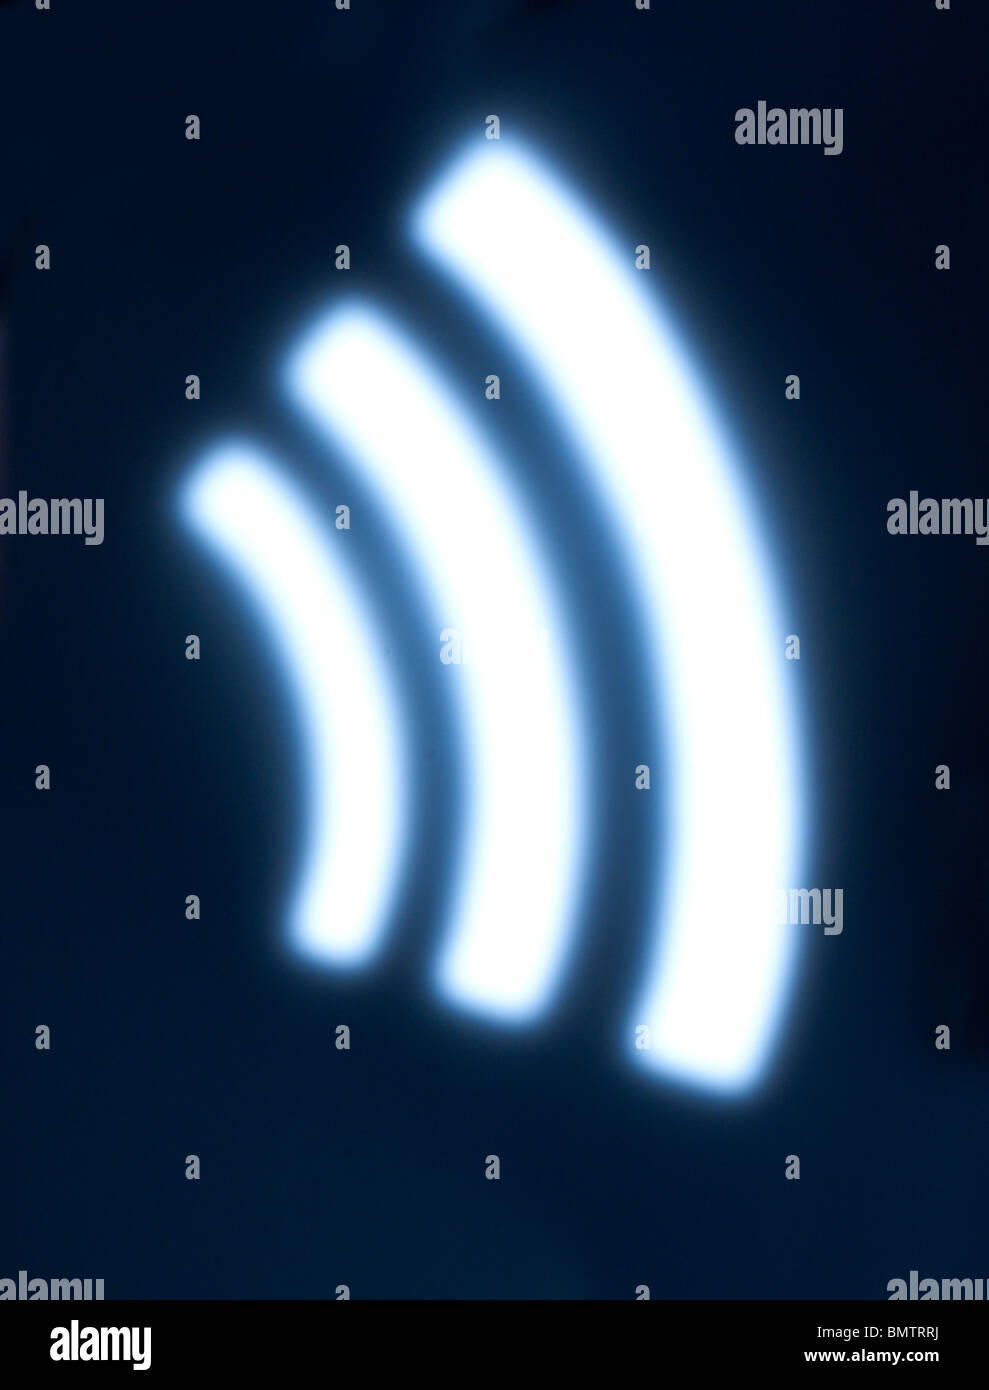 Wireless wifi wi fi - Stock Image